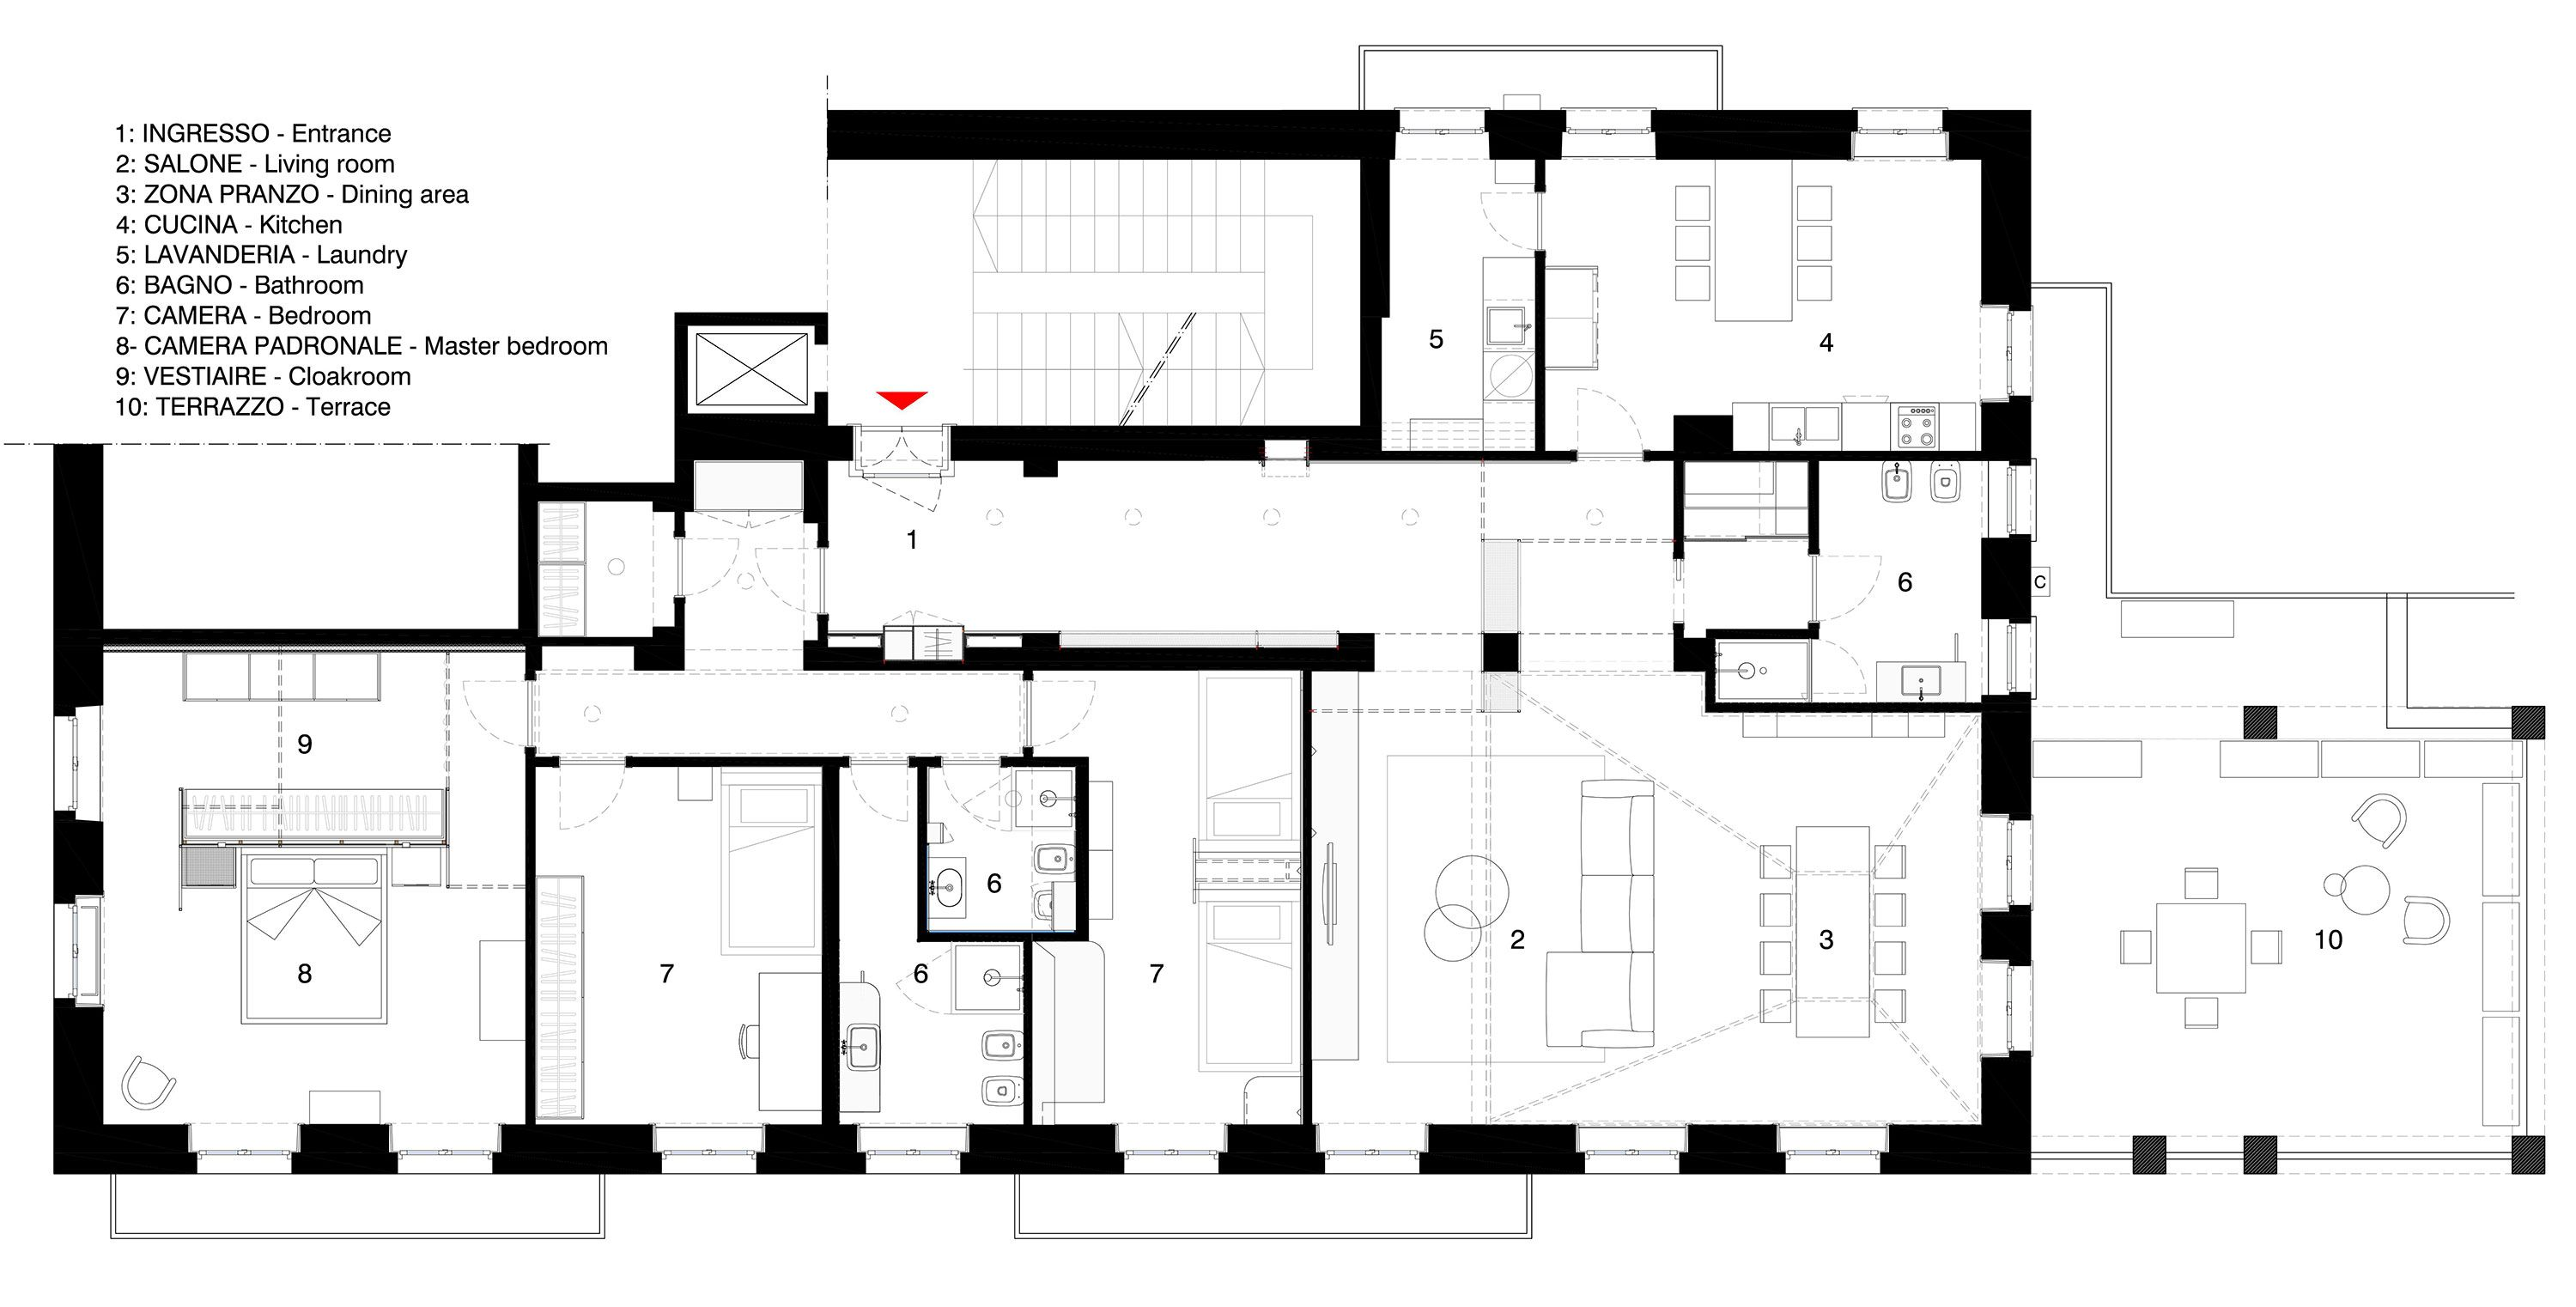 5 bedroom loft floor plans  Metaphysical Remix  PLAN DRAWINGS  Pinterest  Restoration and